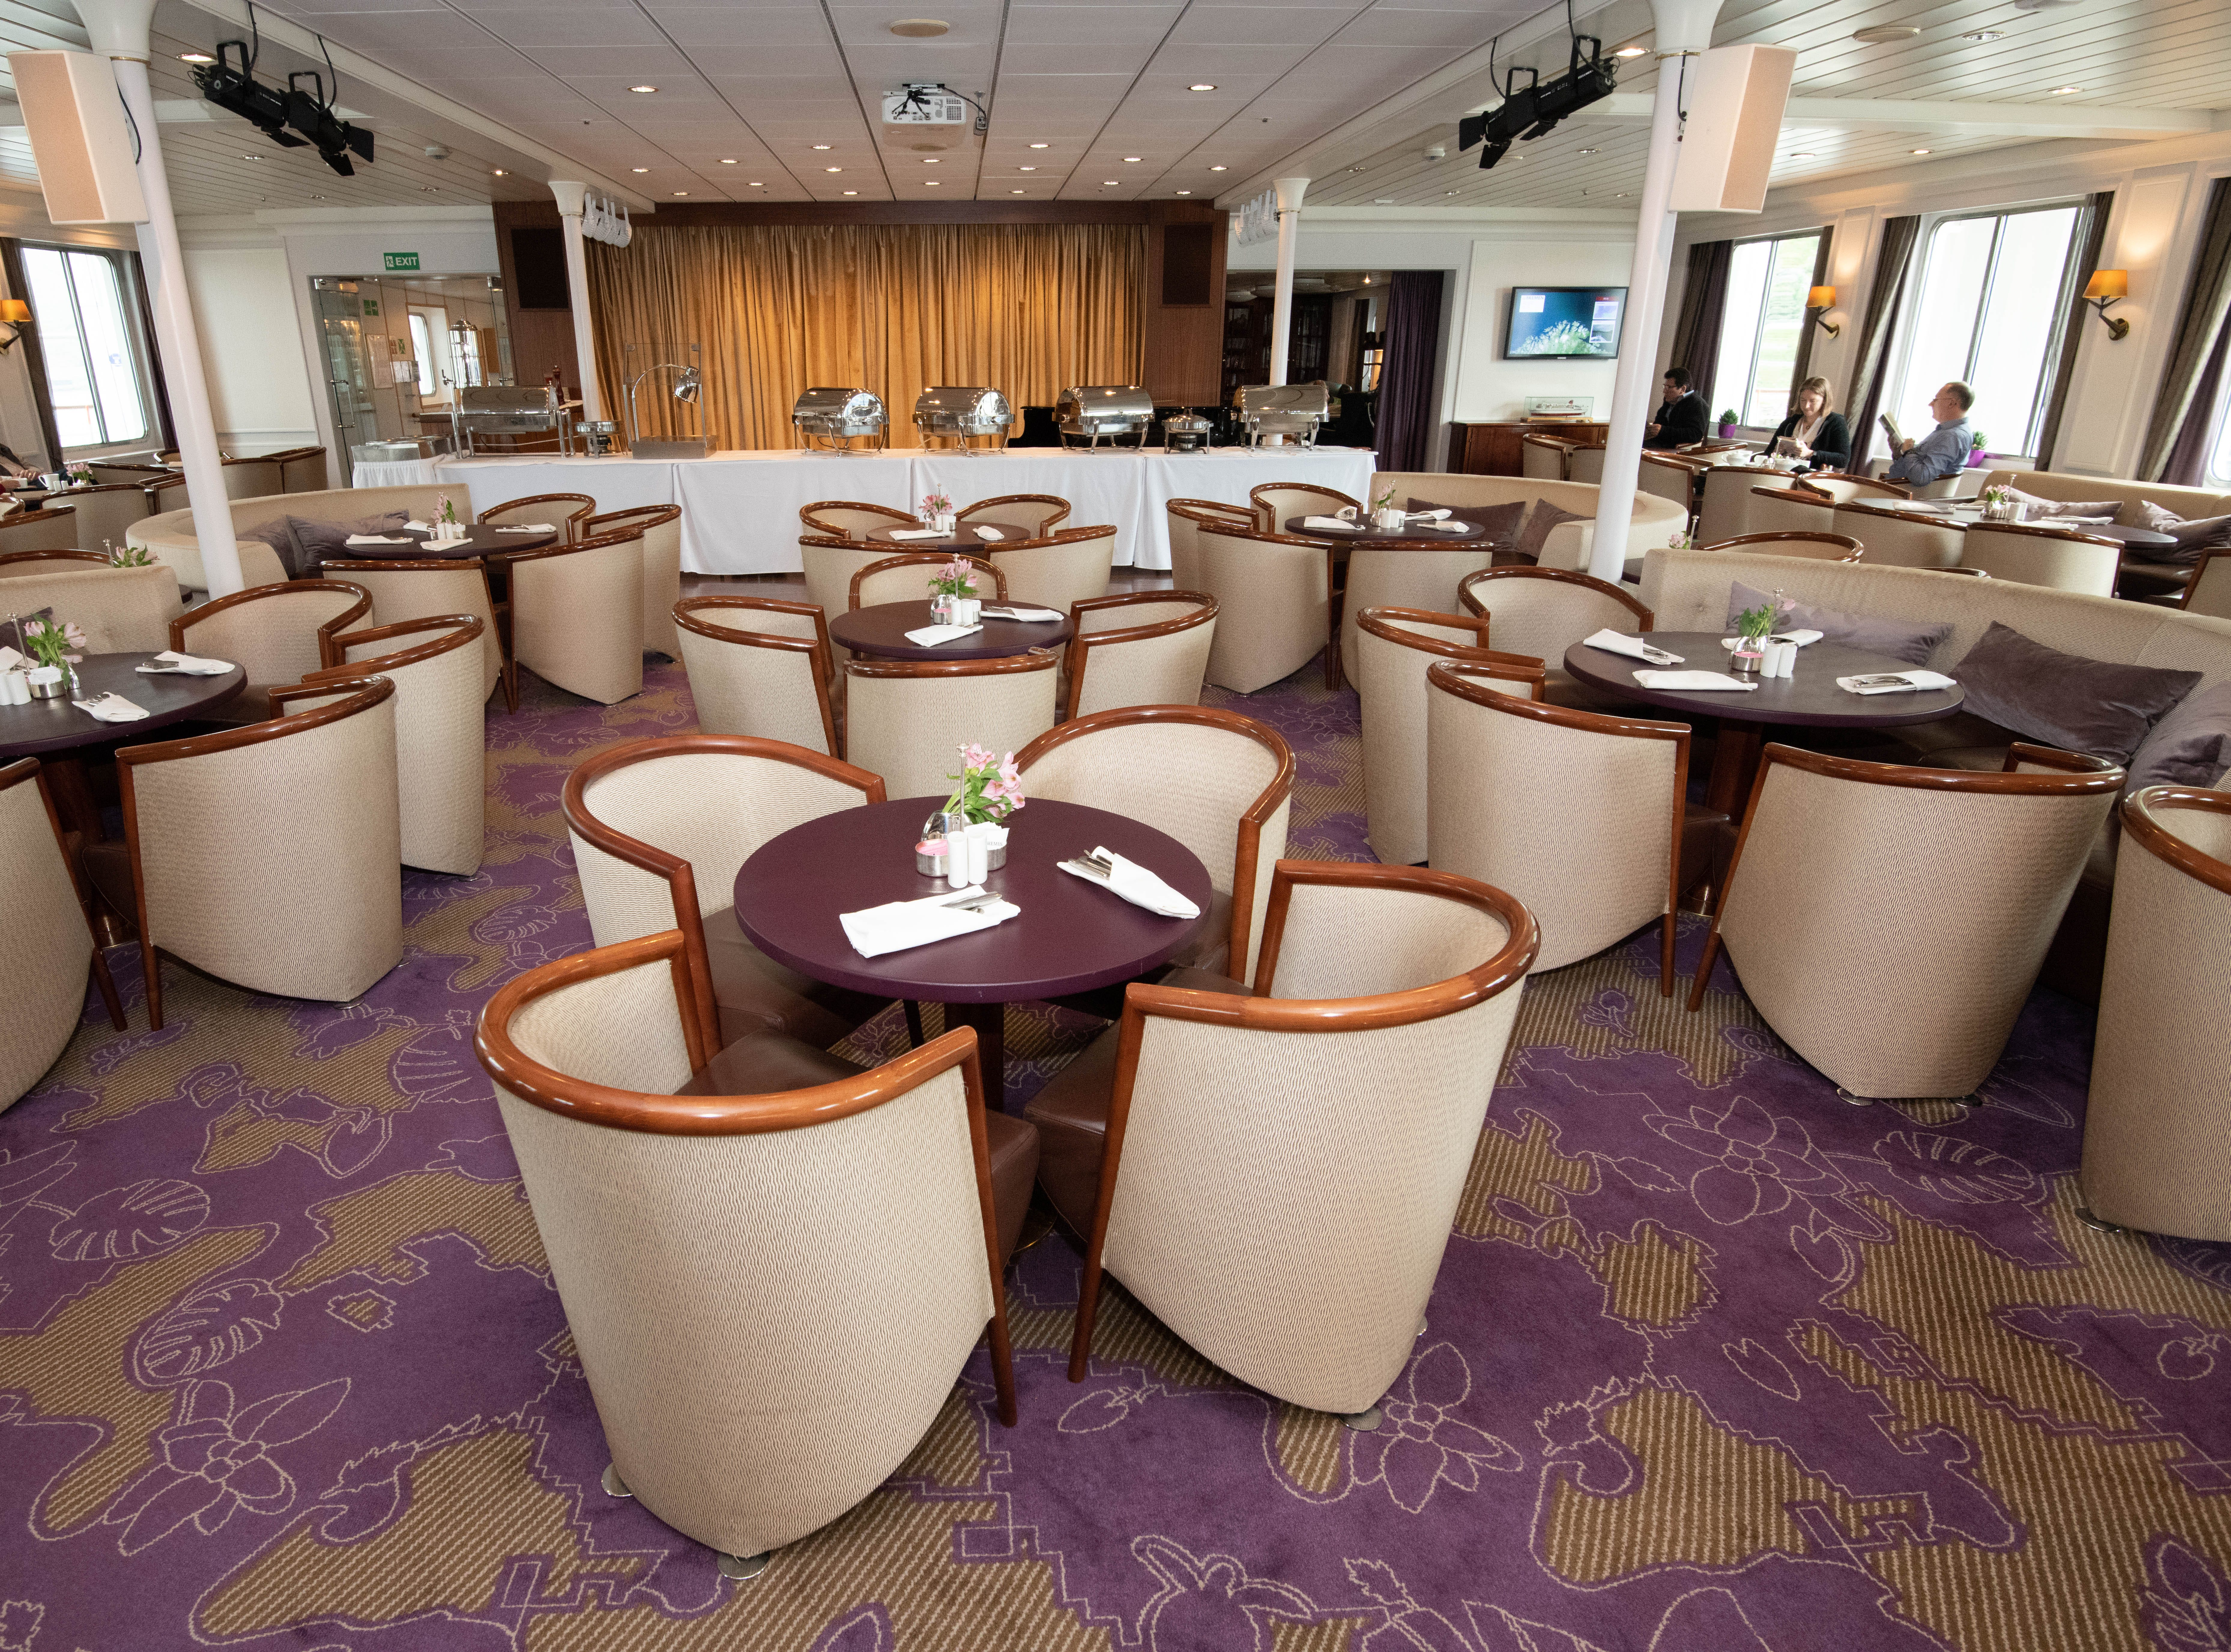 The Bremen Club lounge was designed with 149 seats, just about enough to hold every passenger on the ship at once.